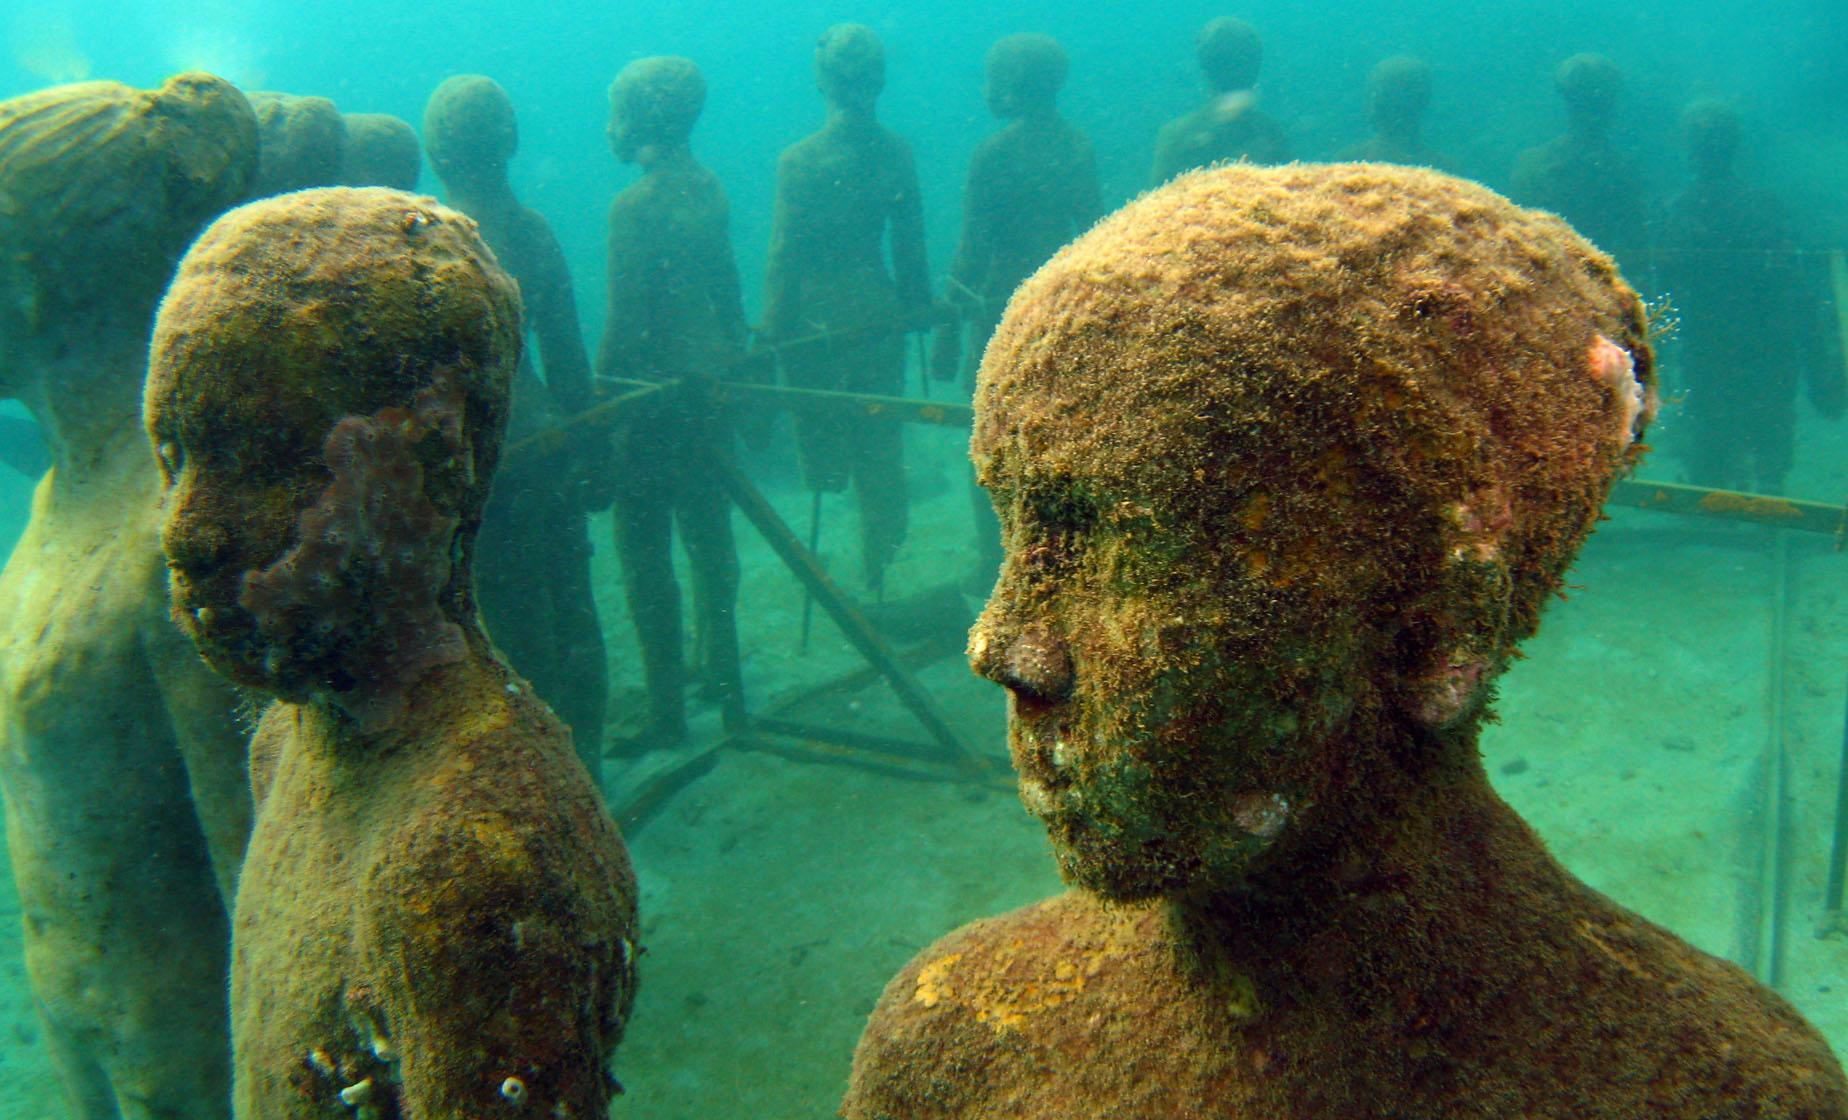 Snorkeling Grenada's Underwater Sculpture Park and Reefs